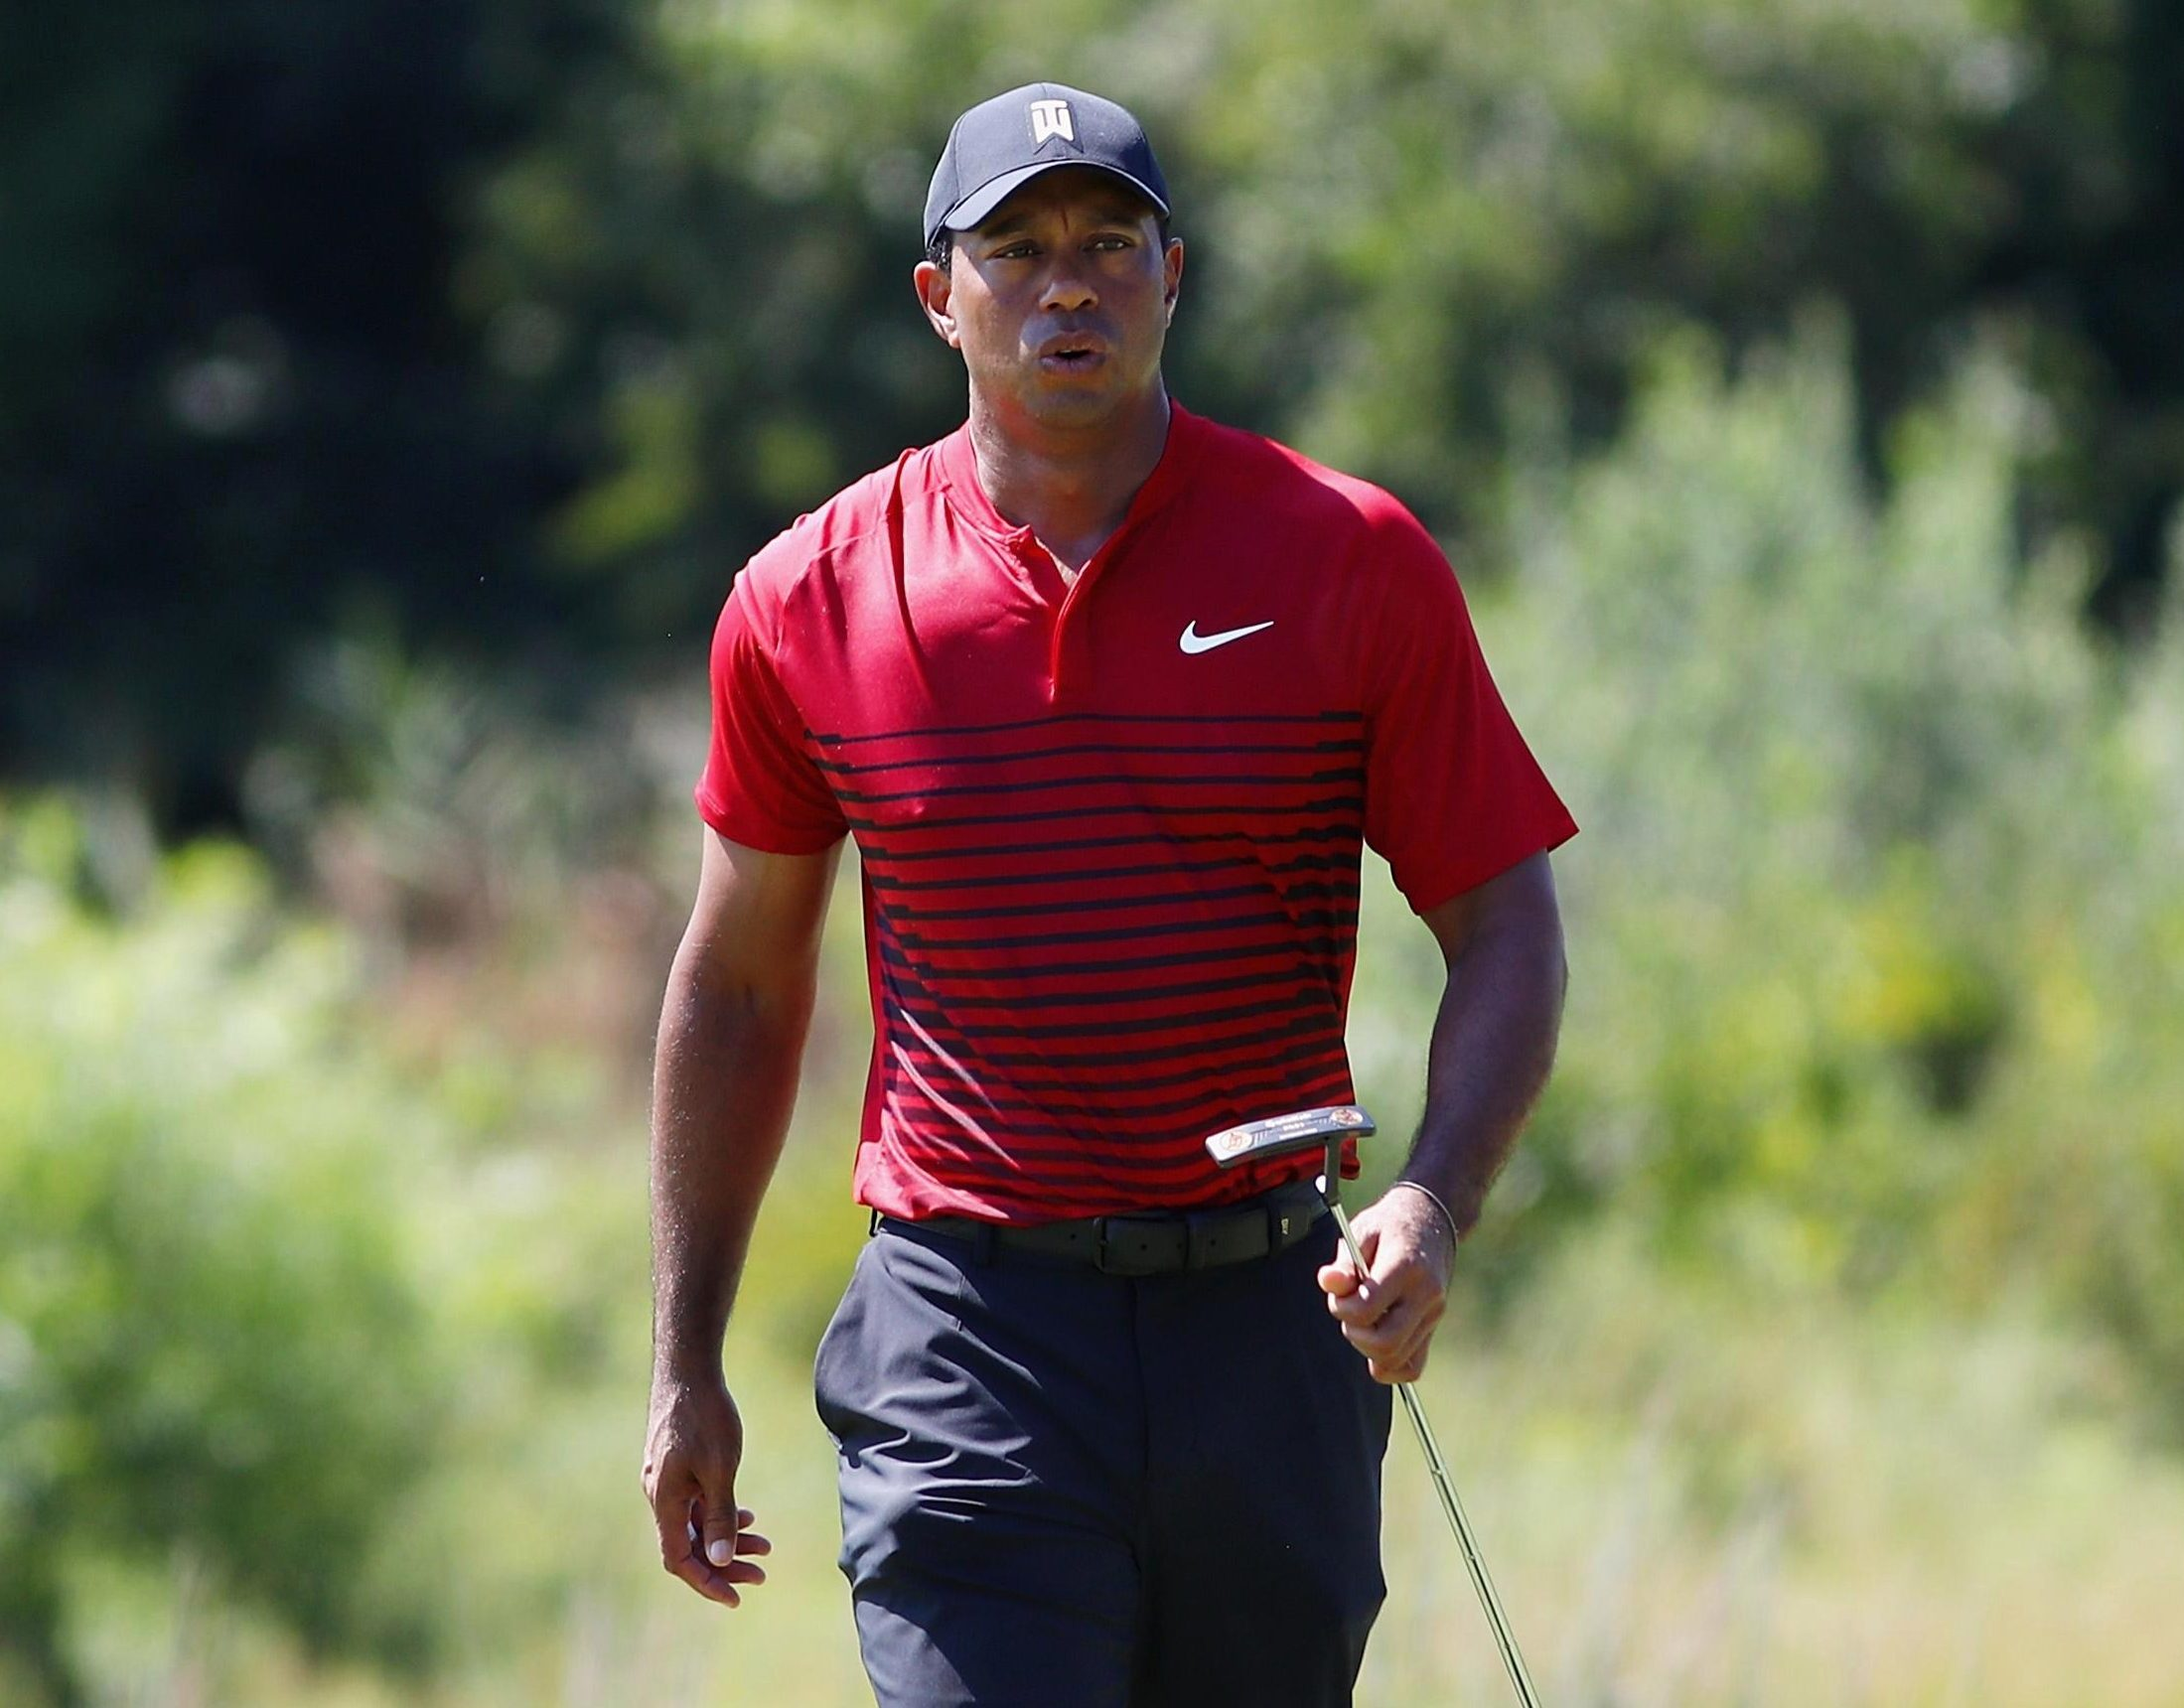 Tiger Woods will play in his first Ryder Cup since 2012